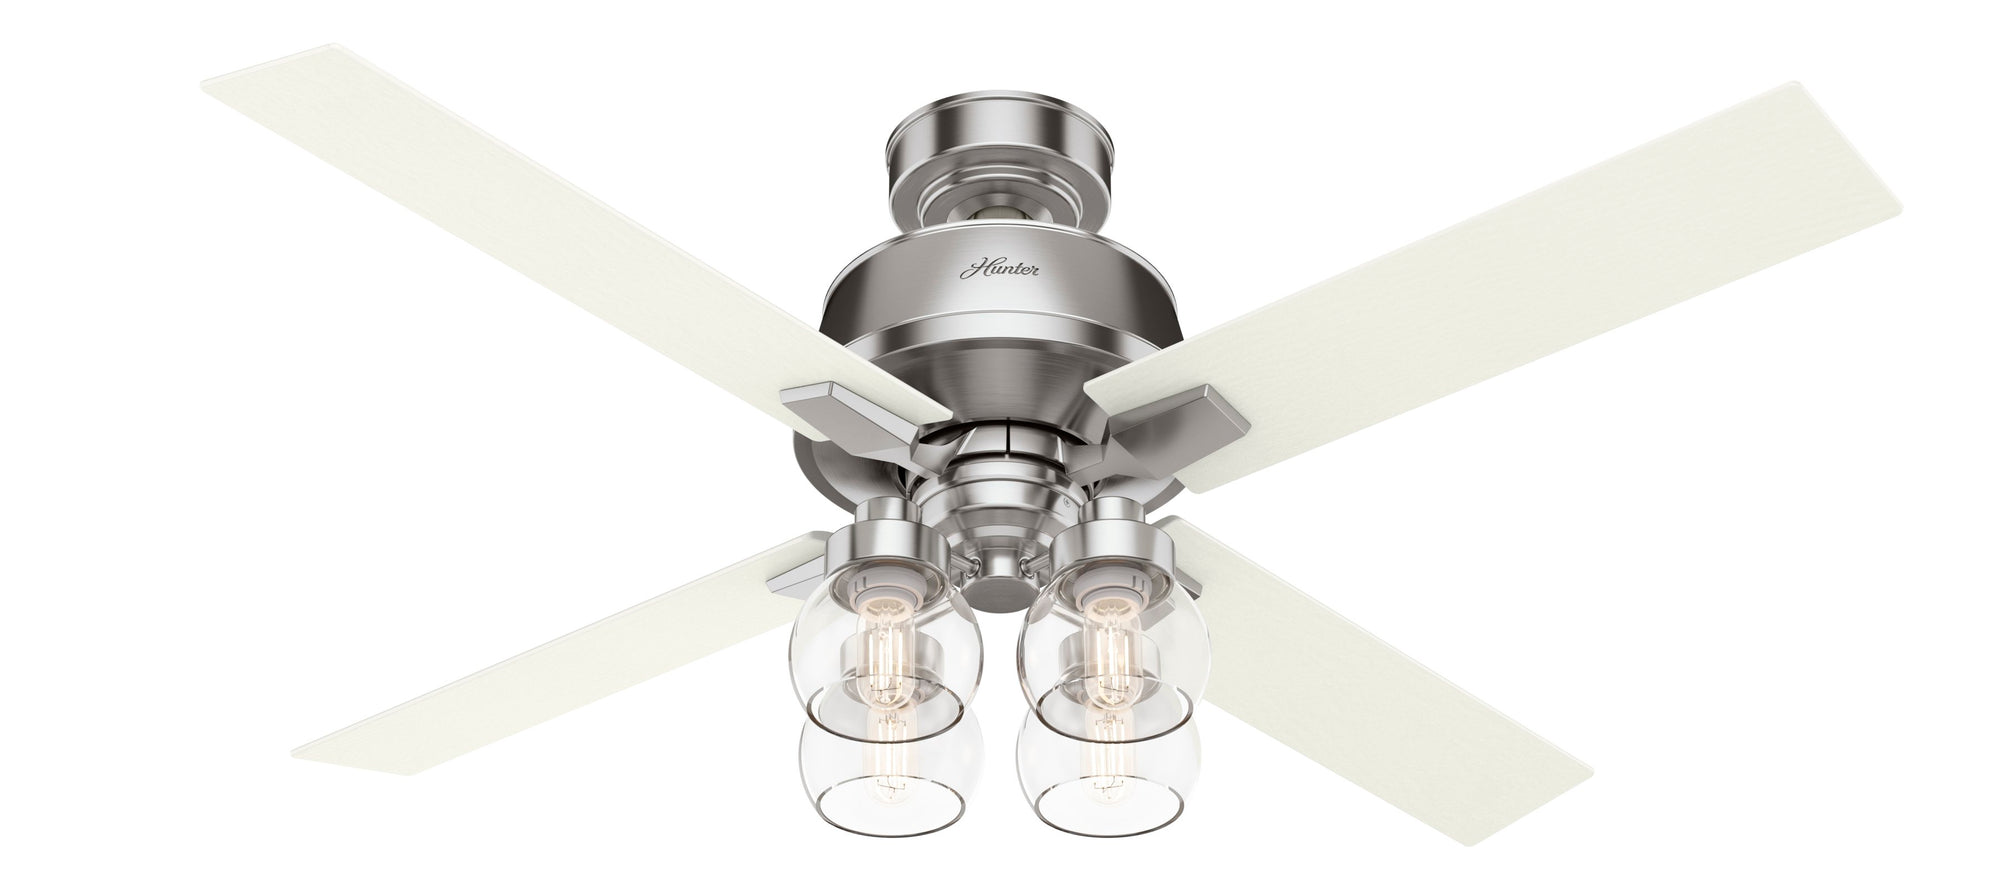 Hunter Indoor Astor Ceiling Fan with LED LightJD inch, Brushed Nickel/Chrome, 59650